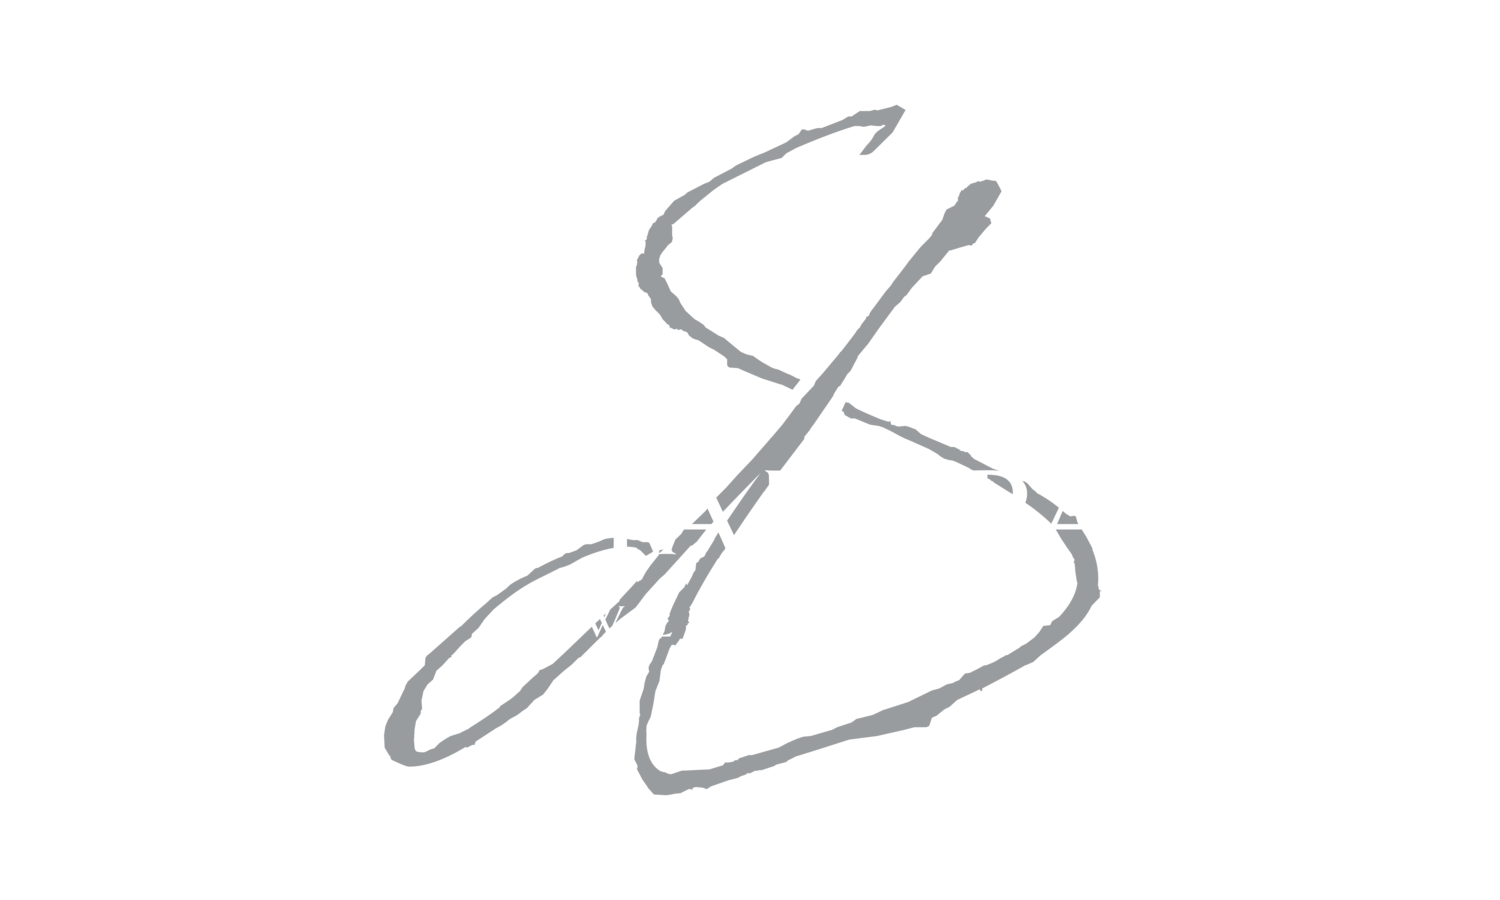 Wedding Videography & Photography - Digital Spark Weddings